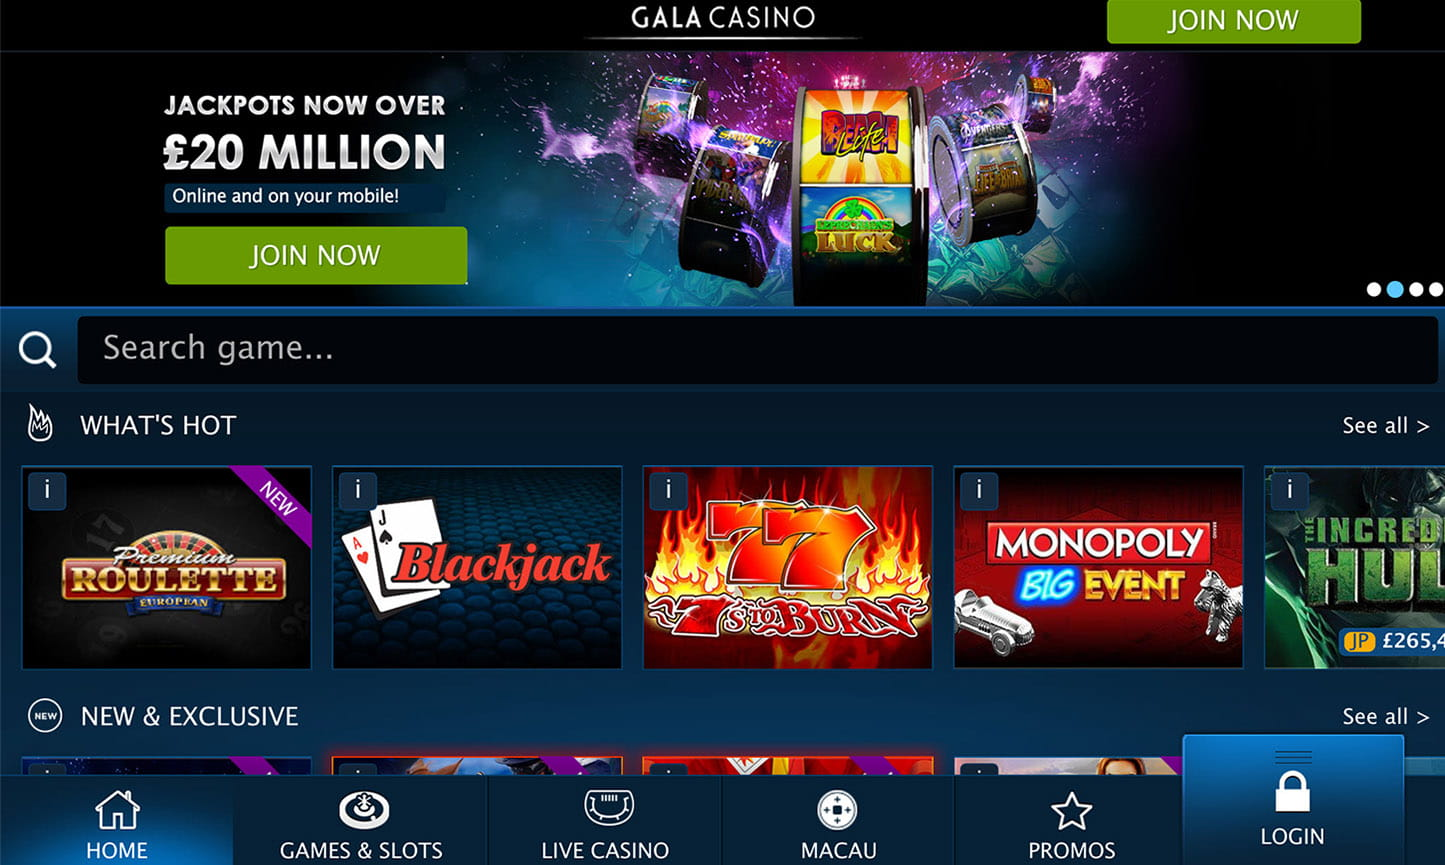 Play 21 Duel Blackjack | Up to $/£/€400 Bonus | Casino.com